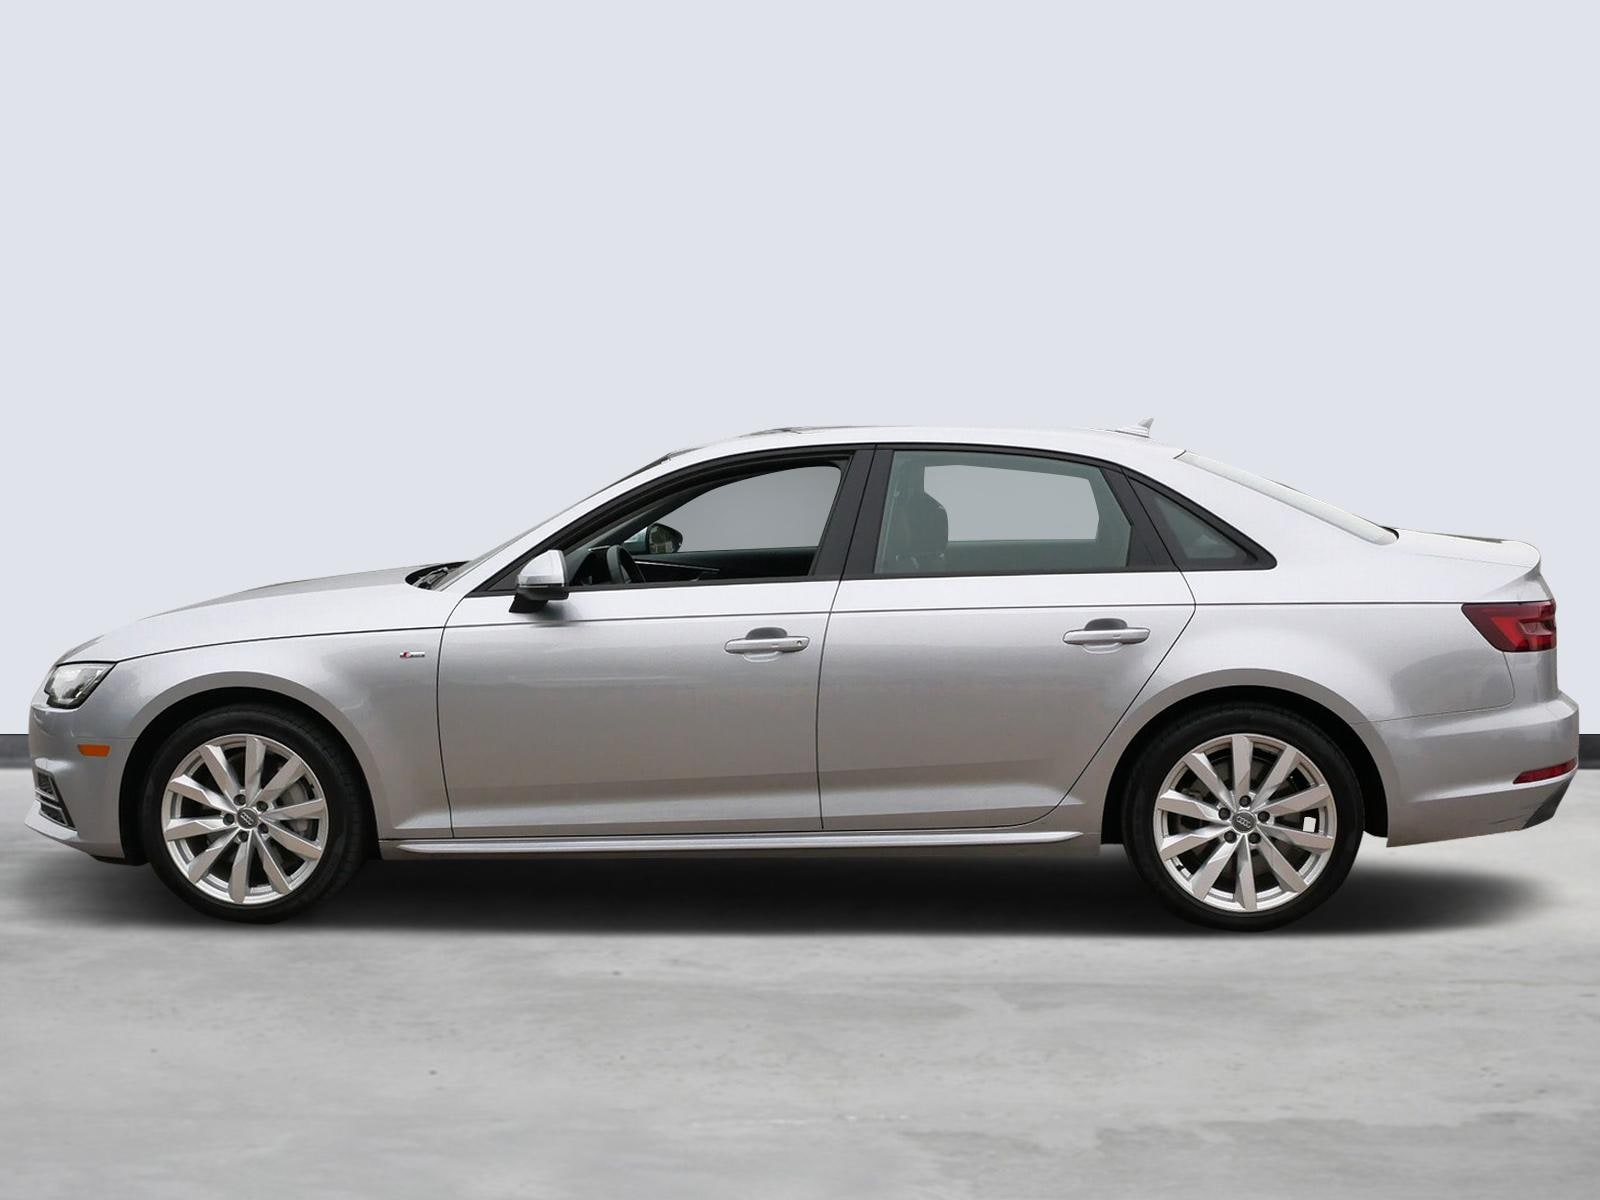 Certified 2018 Audi A4 Premium with VIN WAUDNAF48JN017312 for sale in Minneapolis, Minnesota